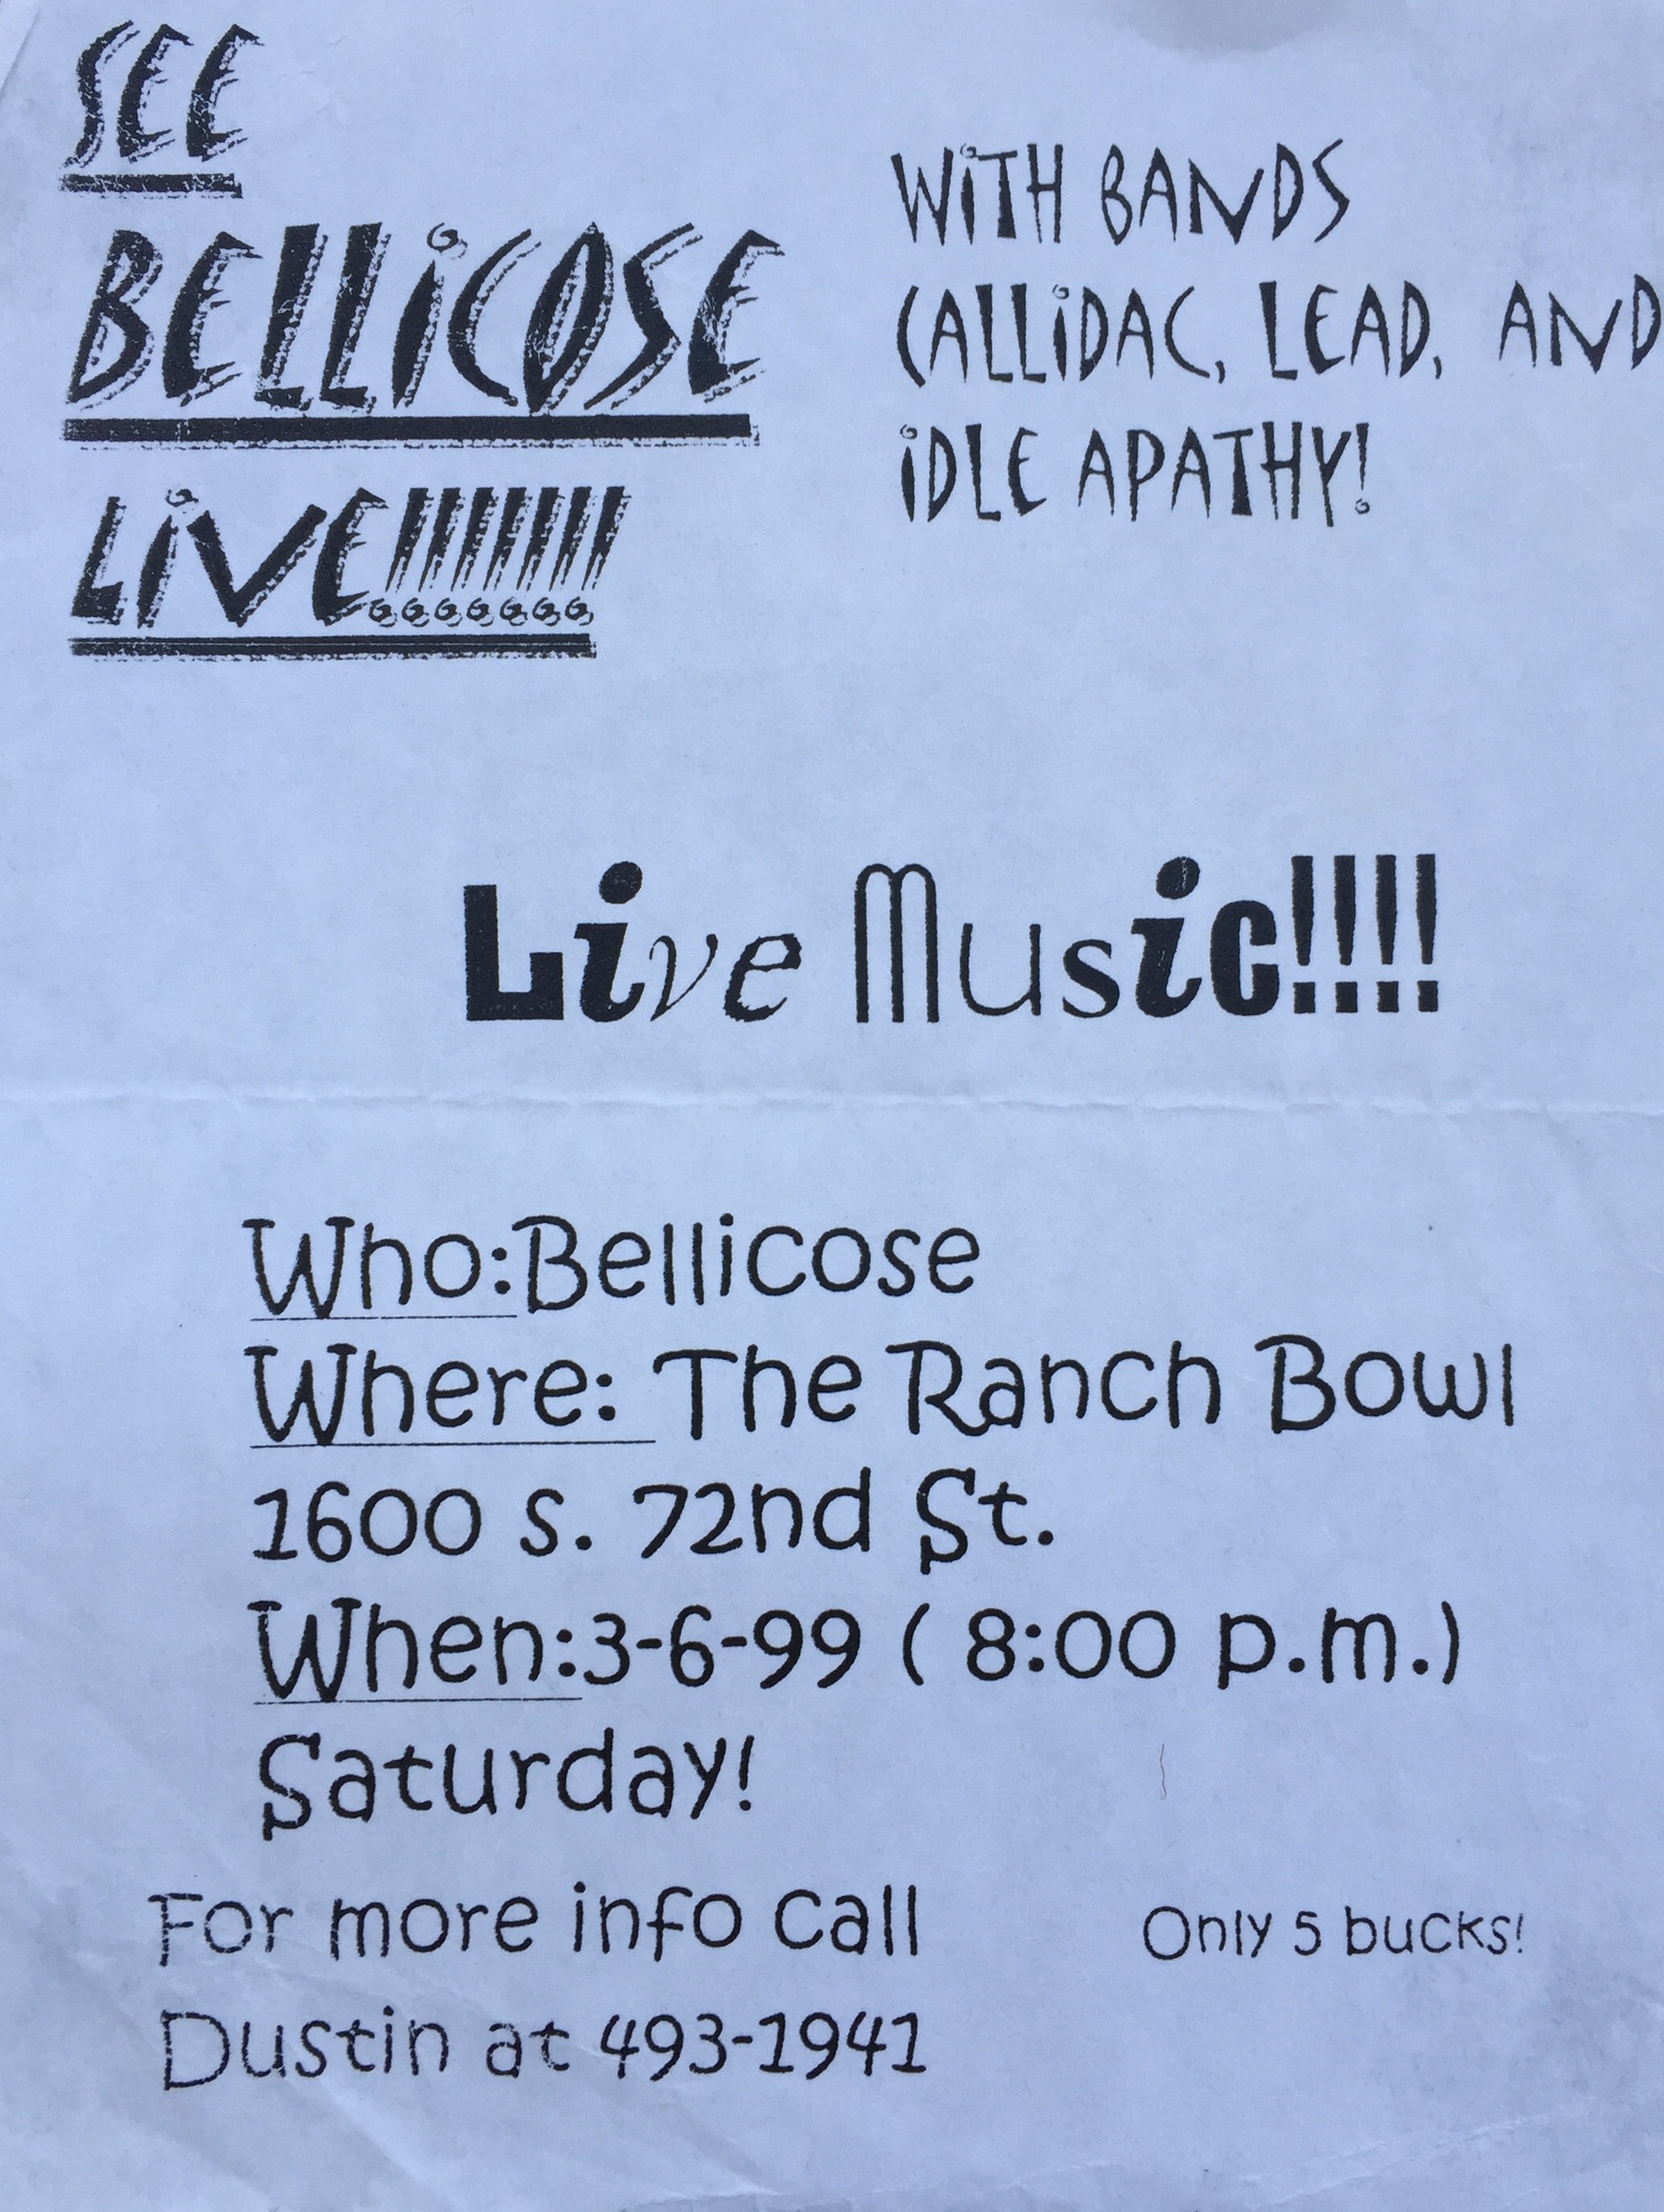 bellicose_ranchbowl5.jpg